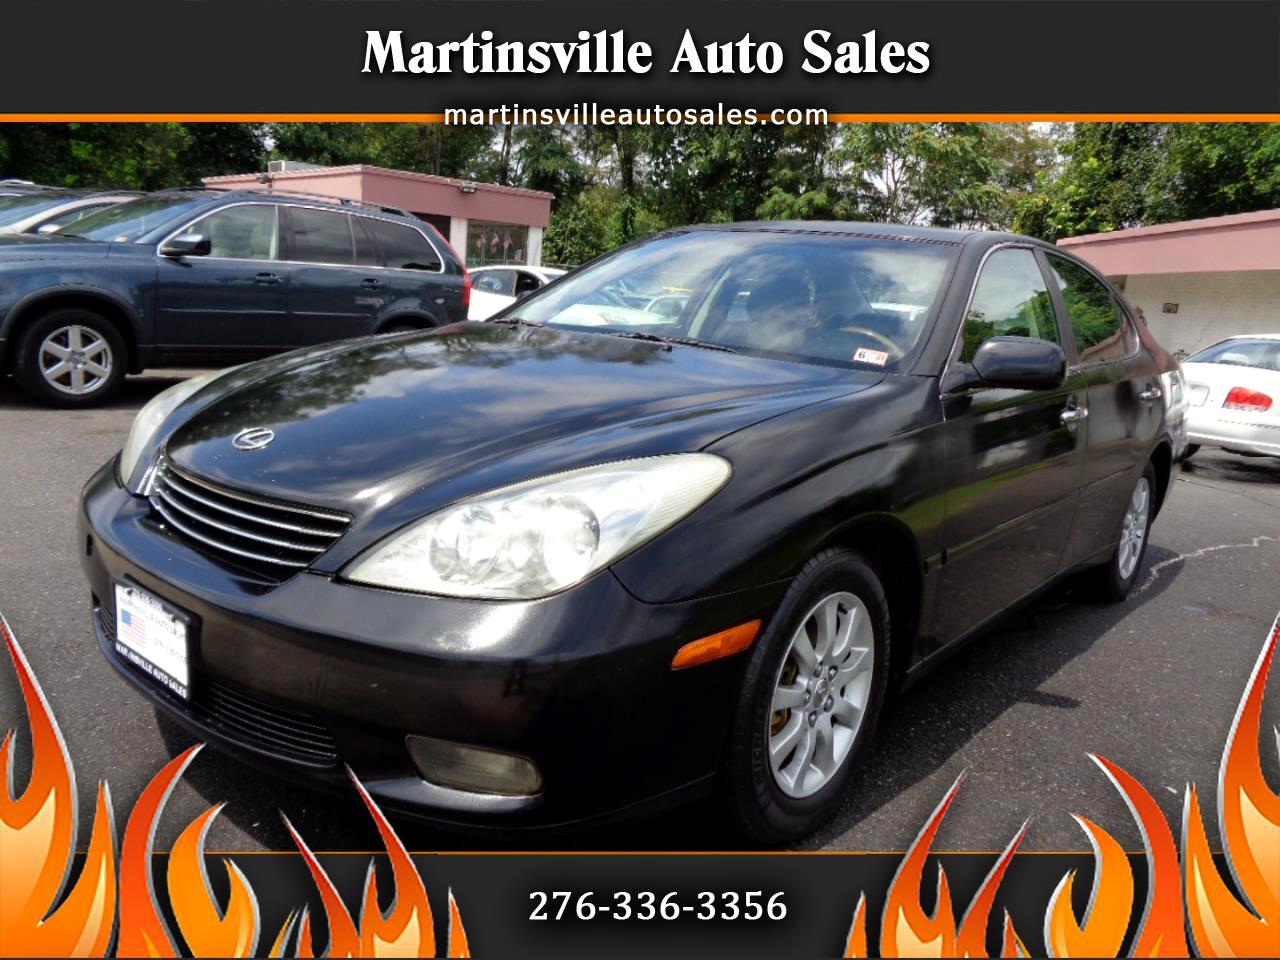 used 2002 lexus es 300 sedan for sale in martinsville va 24112 martinsville auto sales martinsville auto sales